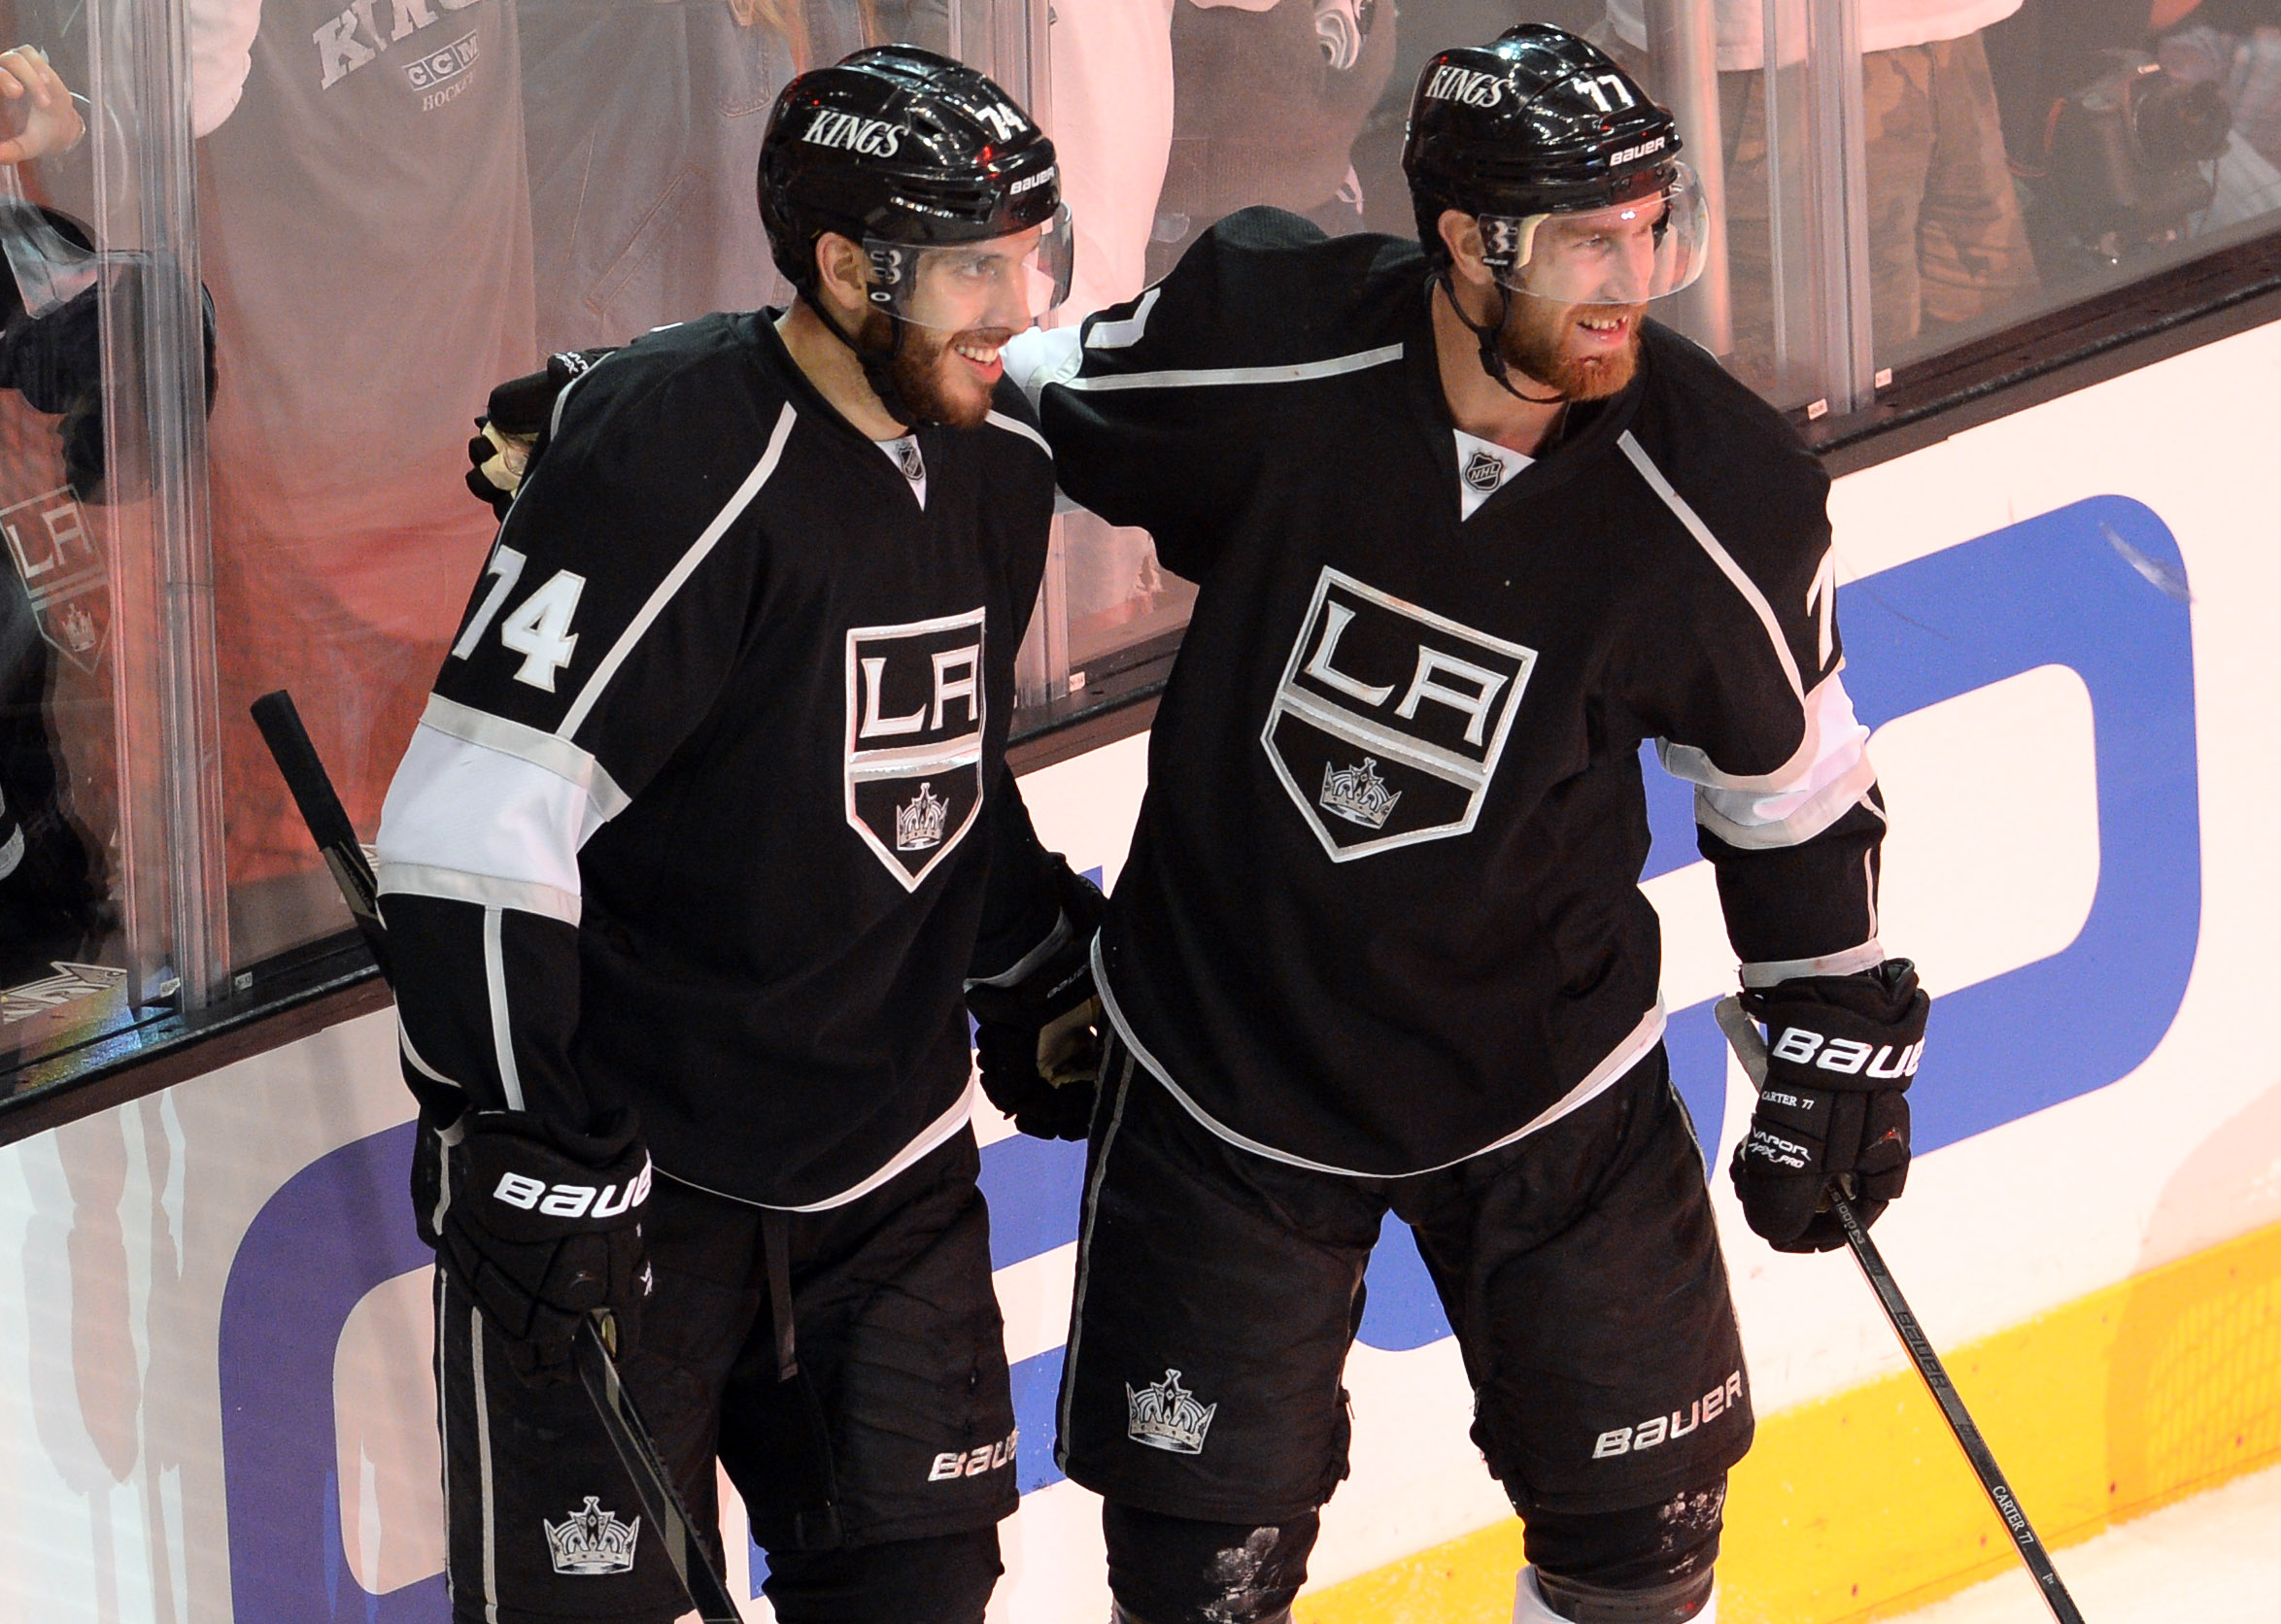 Kings center Jeff Carter (right) left Game 3 with some stitches after getting hit by Duncan Keith. (USA Today Sports)